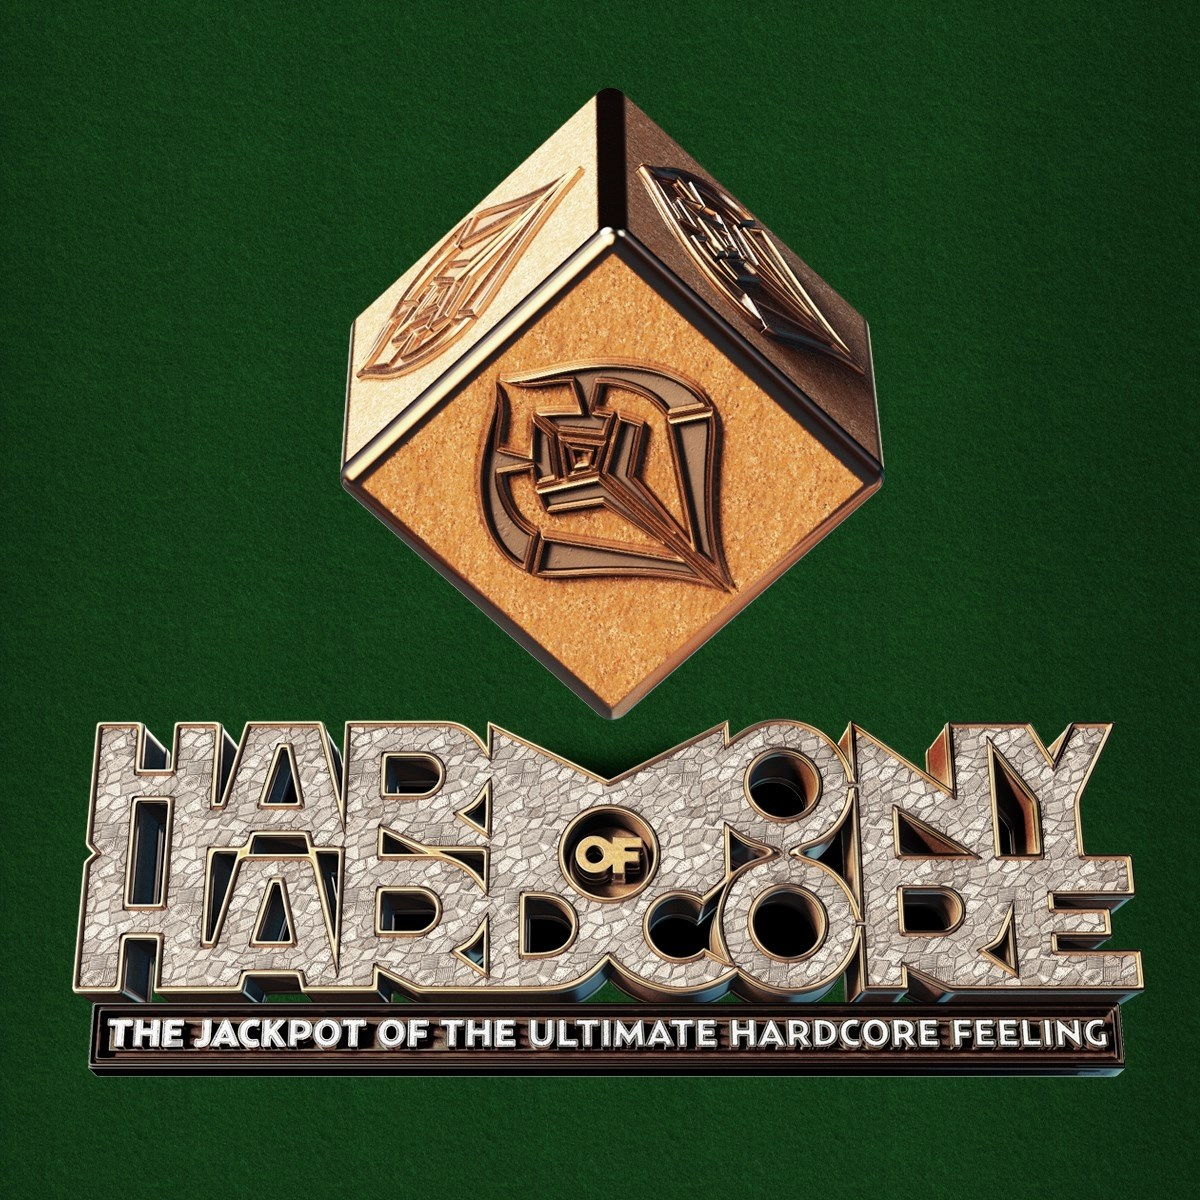 Harmony of Hardcore 2017